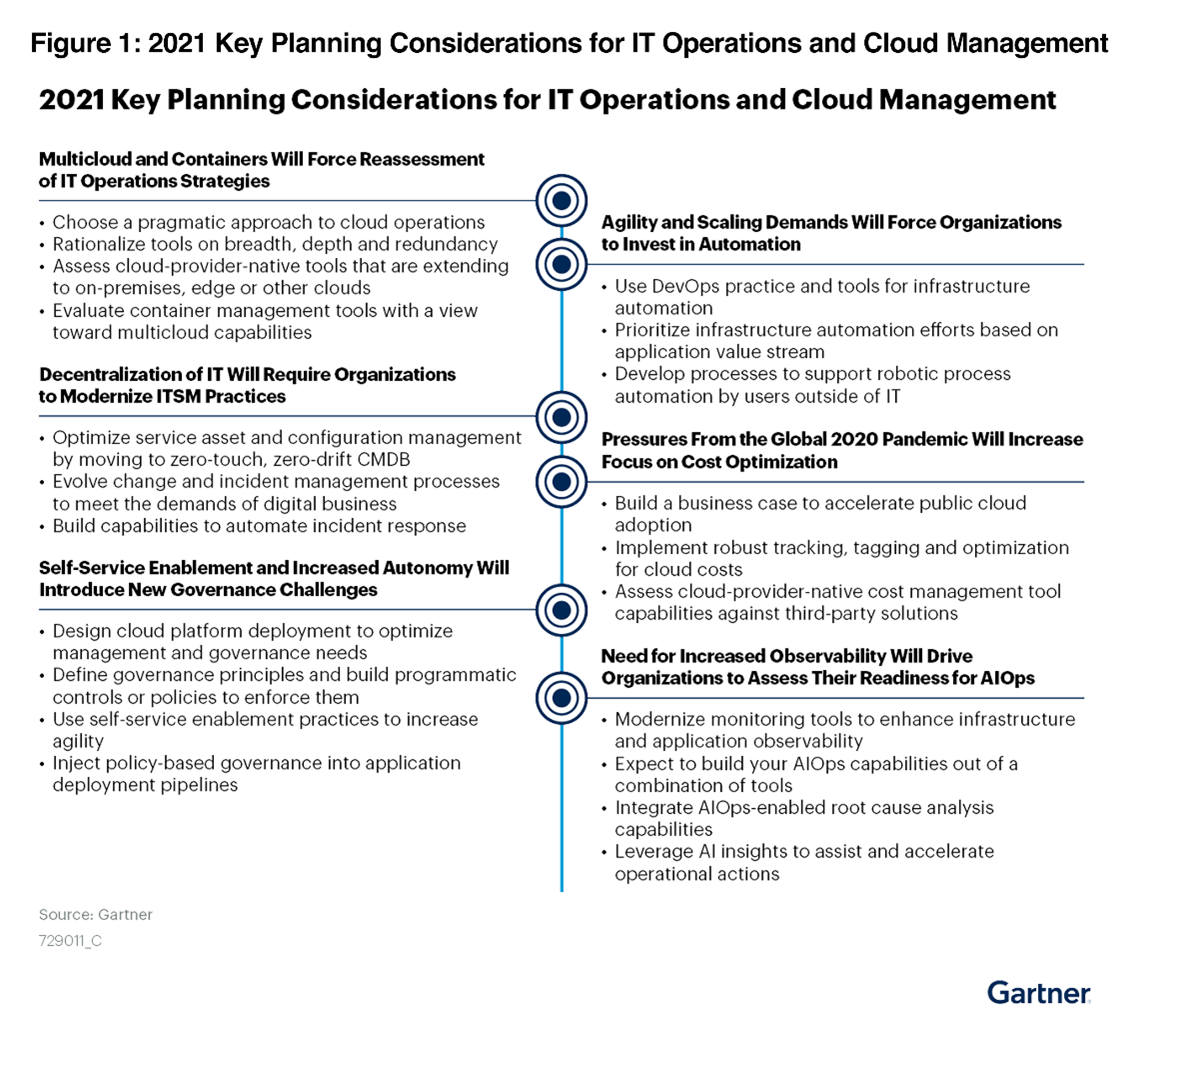 Gartner 2021 top 20 key planning considerations for IT leaders managing cloud infrastructure in their organizations.